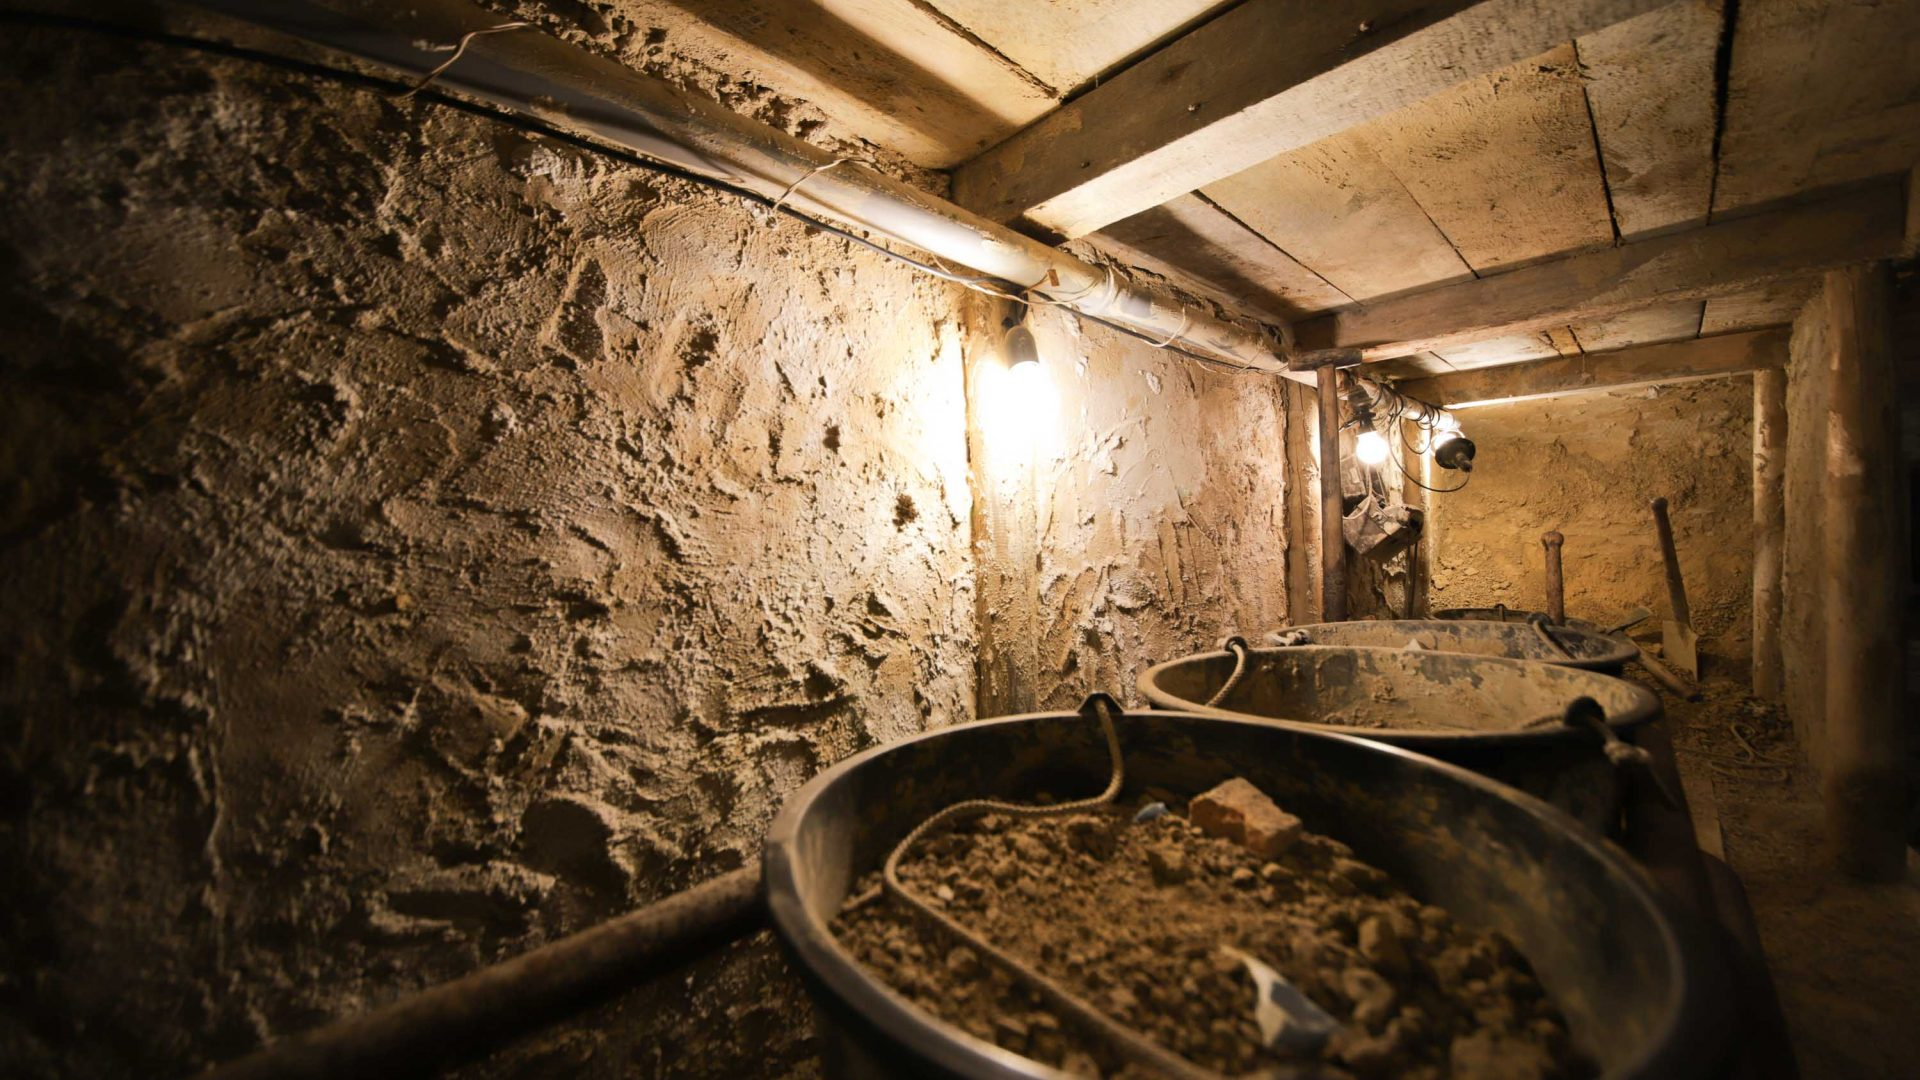 When jumping trains and crawling through sewers didn't work, many resorted to digging their own tunnels to escape East Germany.